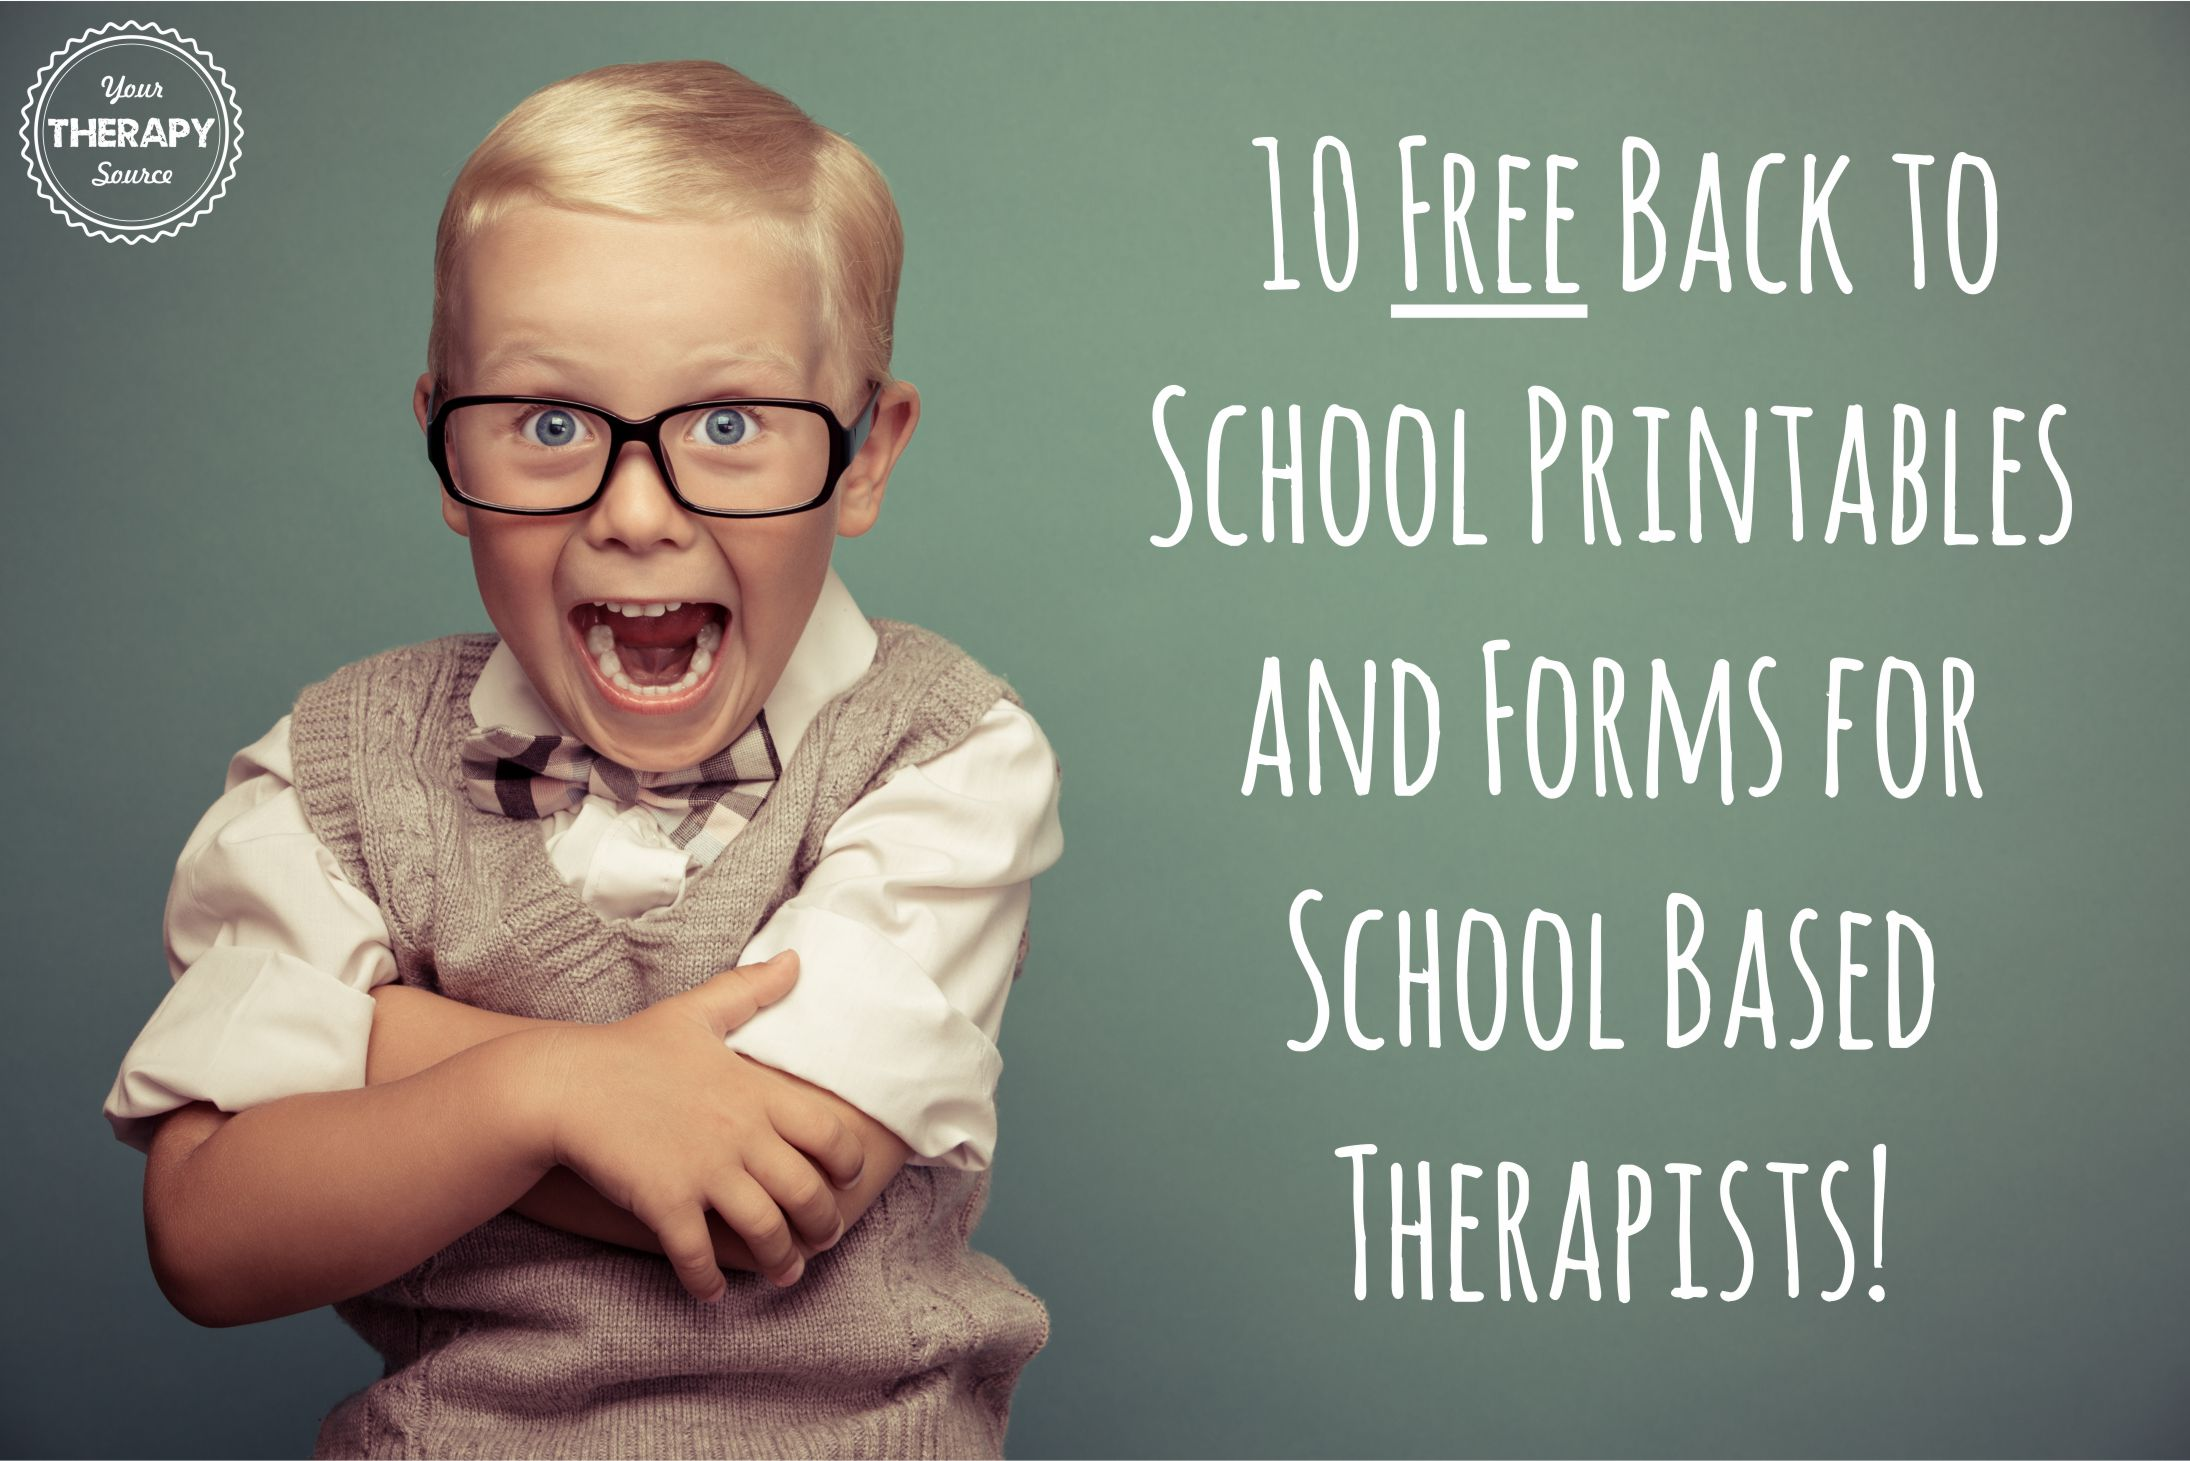 10 Free Back To School Printables And Forms For School Based Therapists